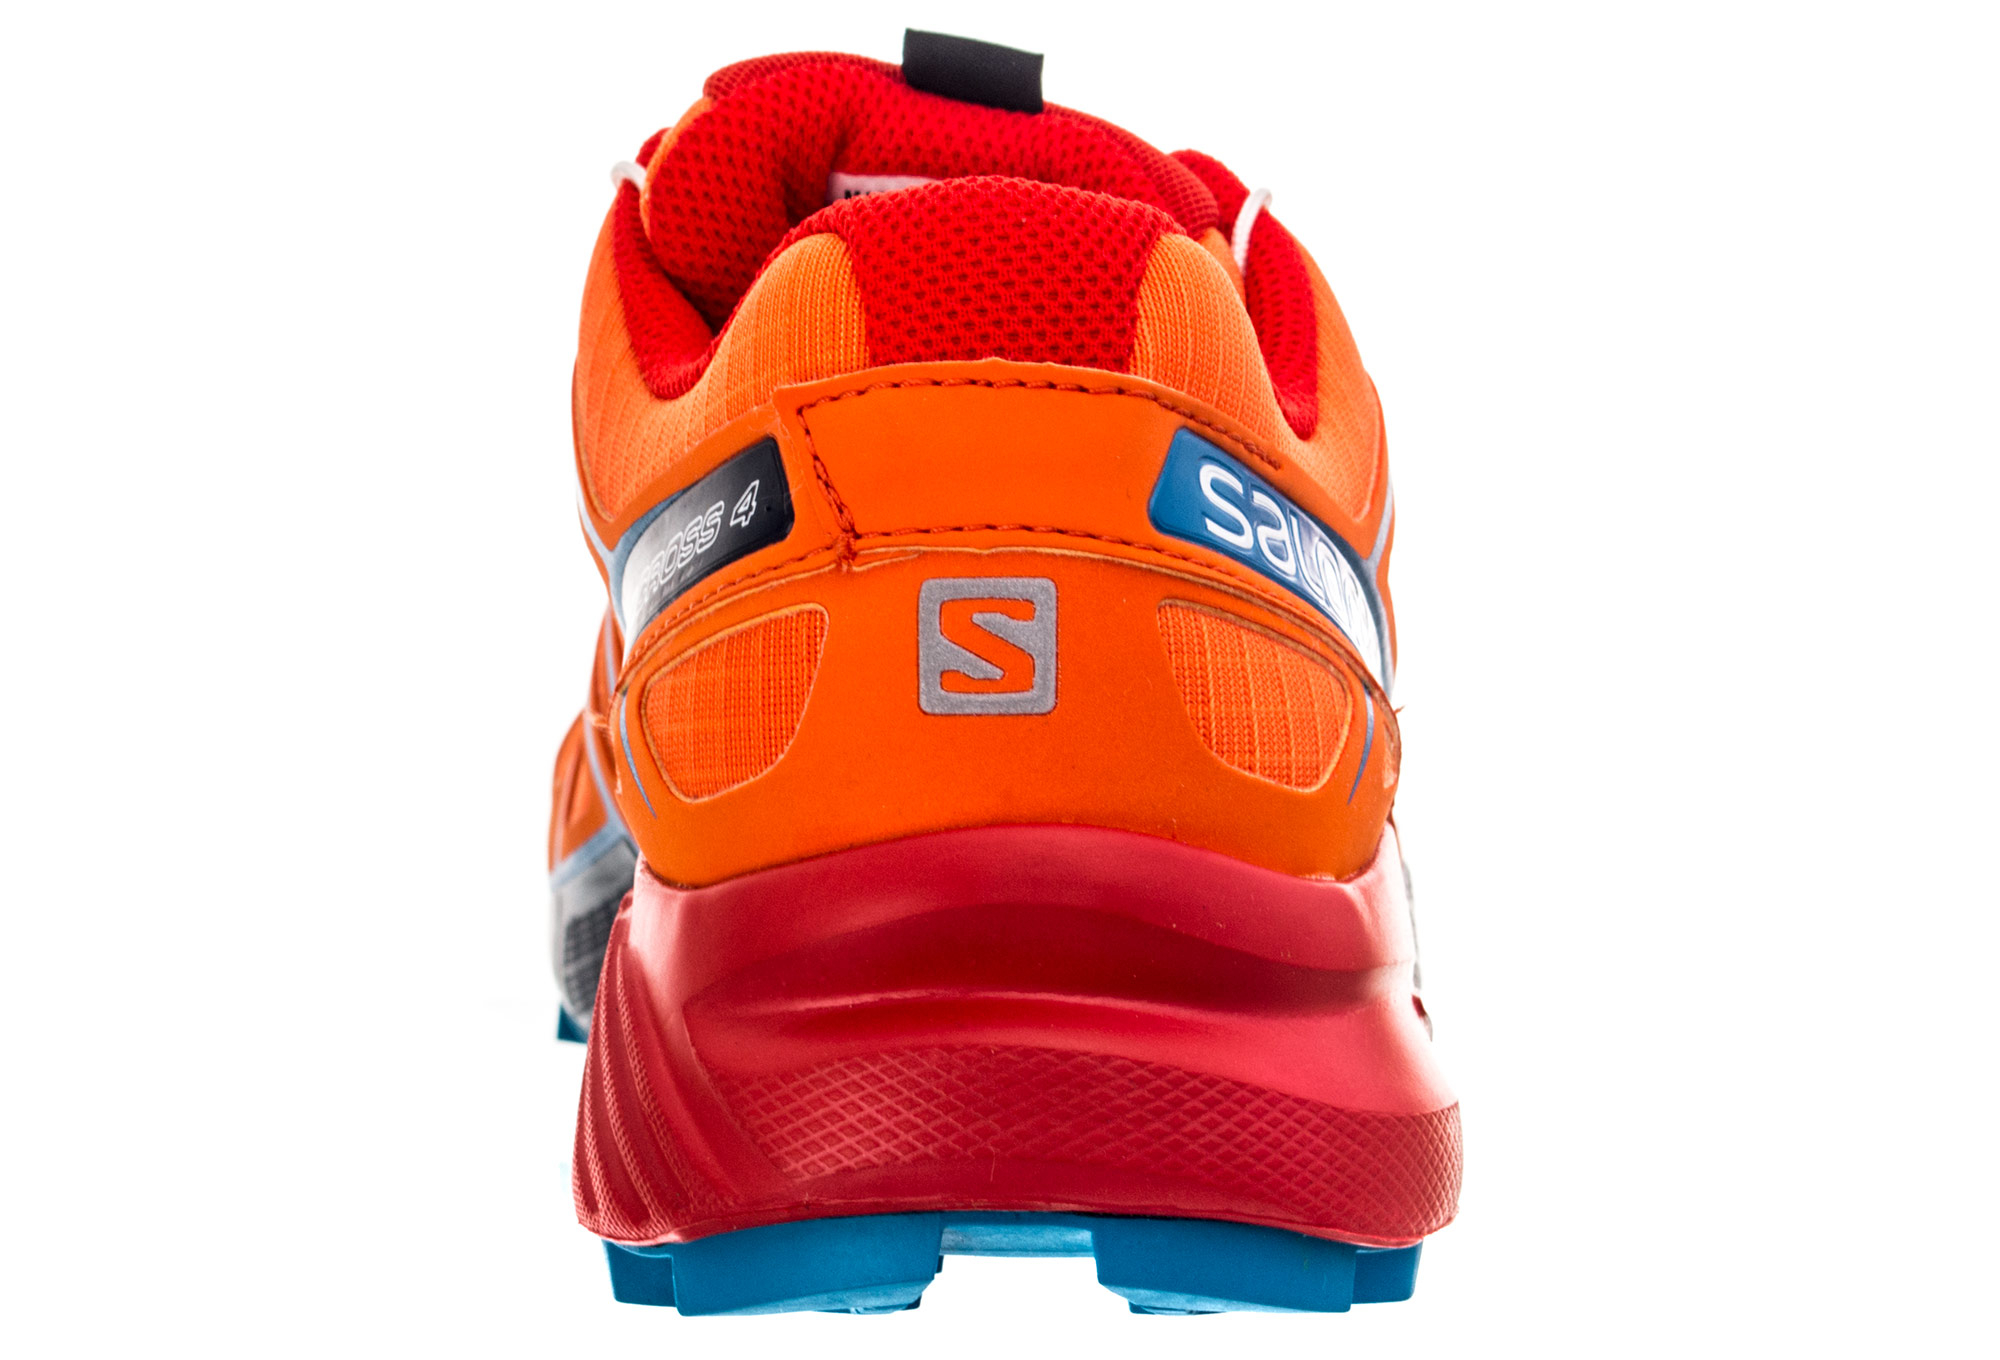 4 Orange Chaussures Salomon Speedcross Trail Bleu de xCBthsQrd